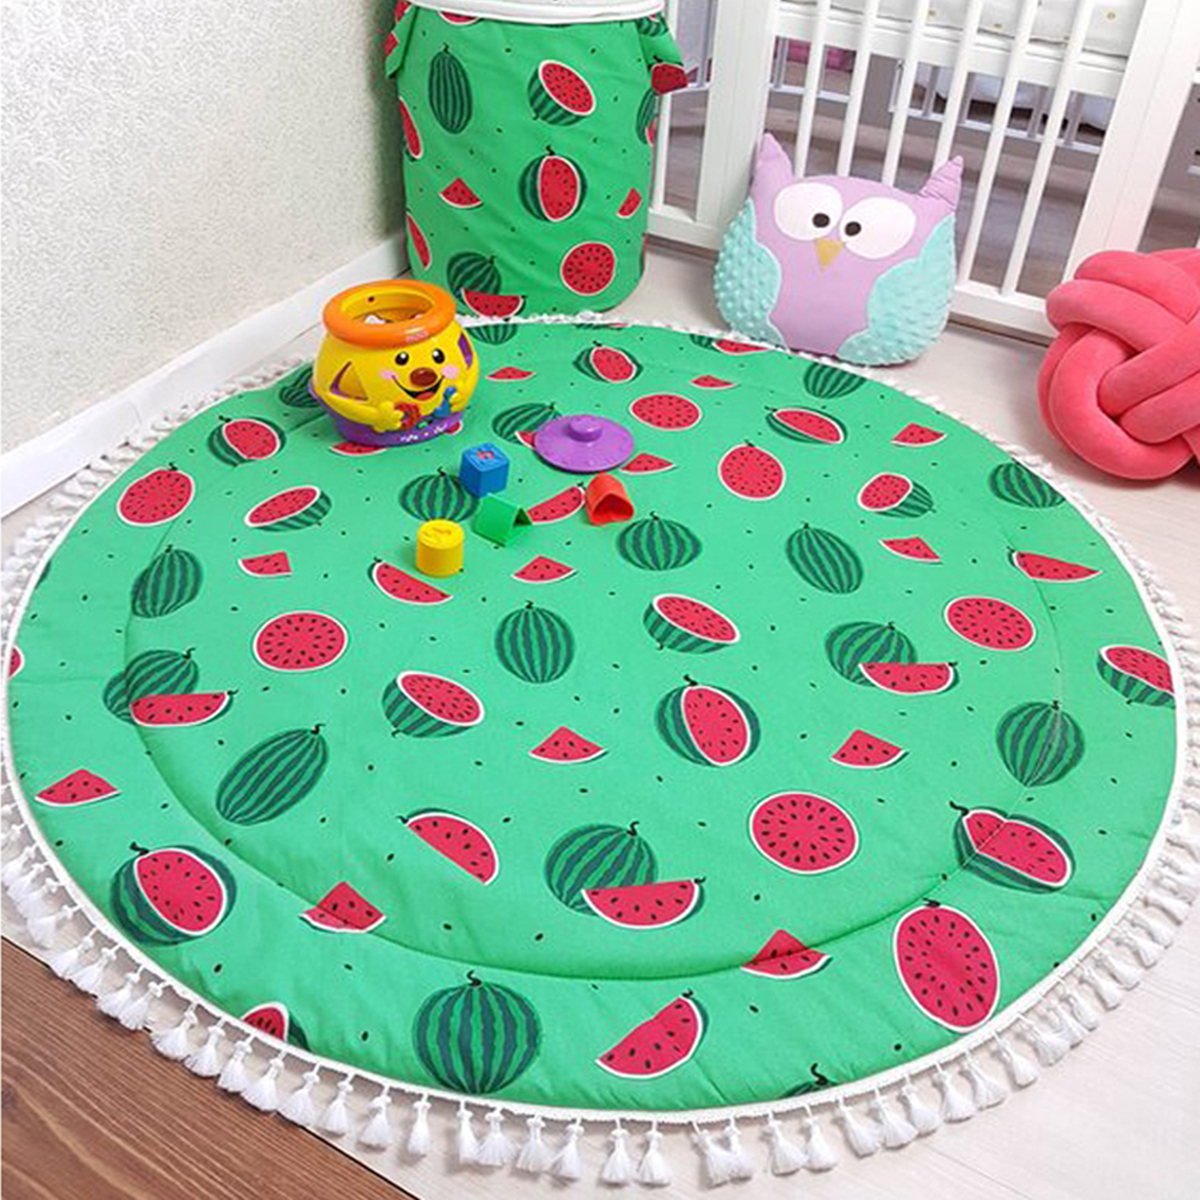 Puseky Hot Selling Watermelon Double Sided Printings 90cm Baby Activity Mat For Baby Bedroom Decoration Baby Playmat